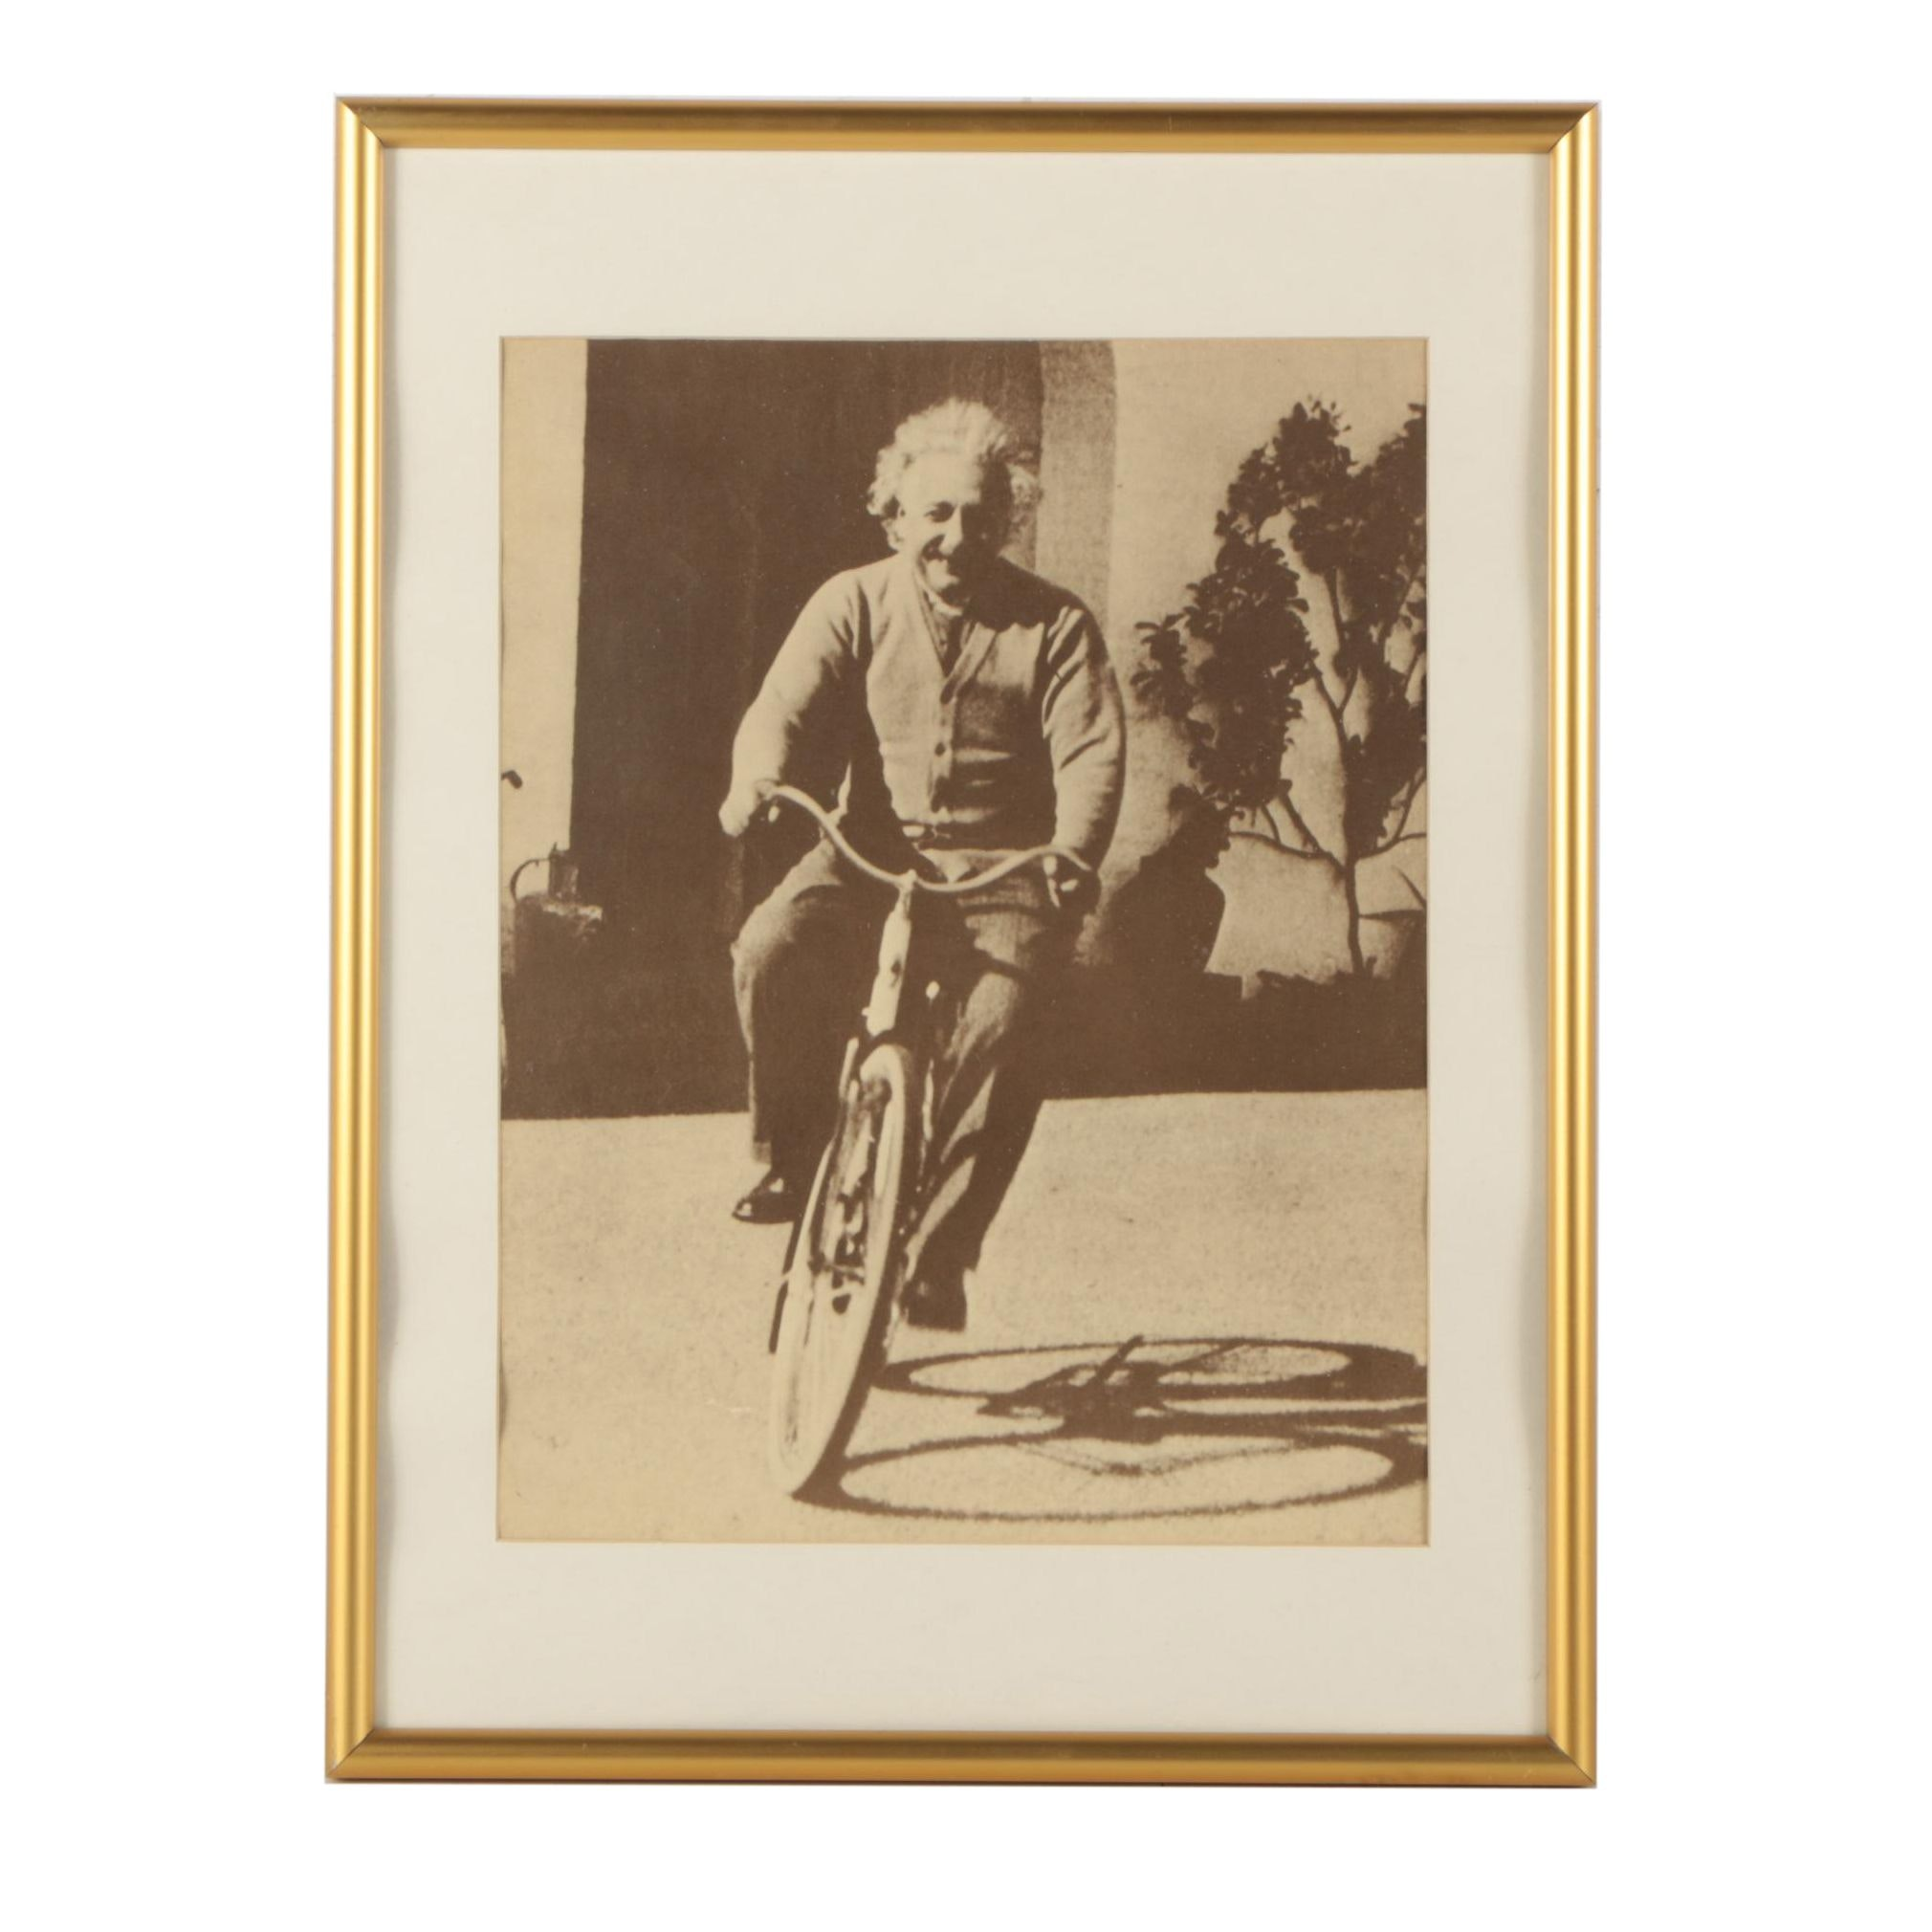 Halftone Print After Photograph of Albert Einstein on Bicycle